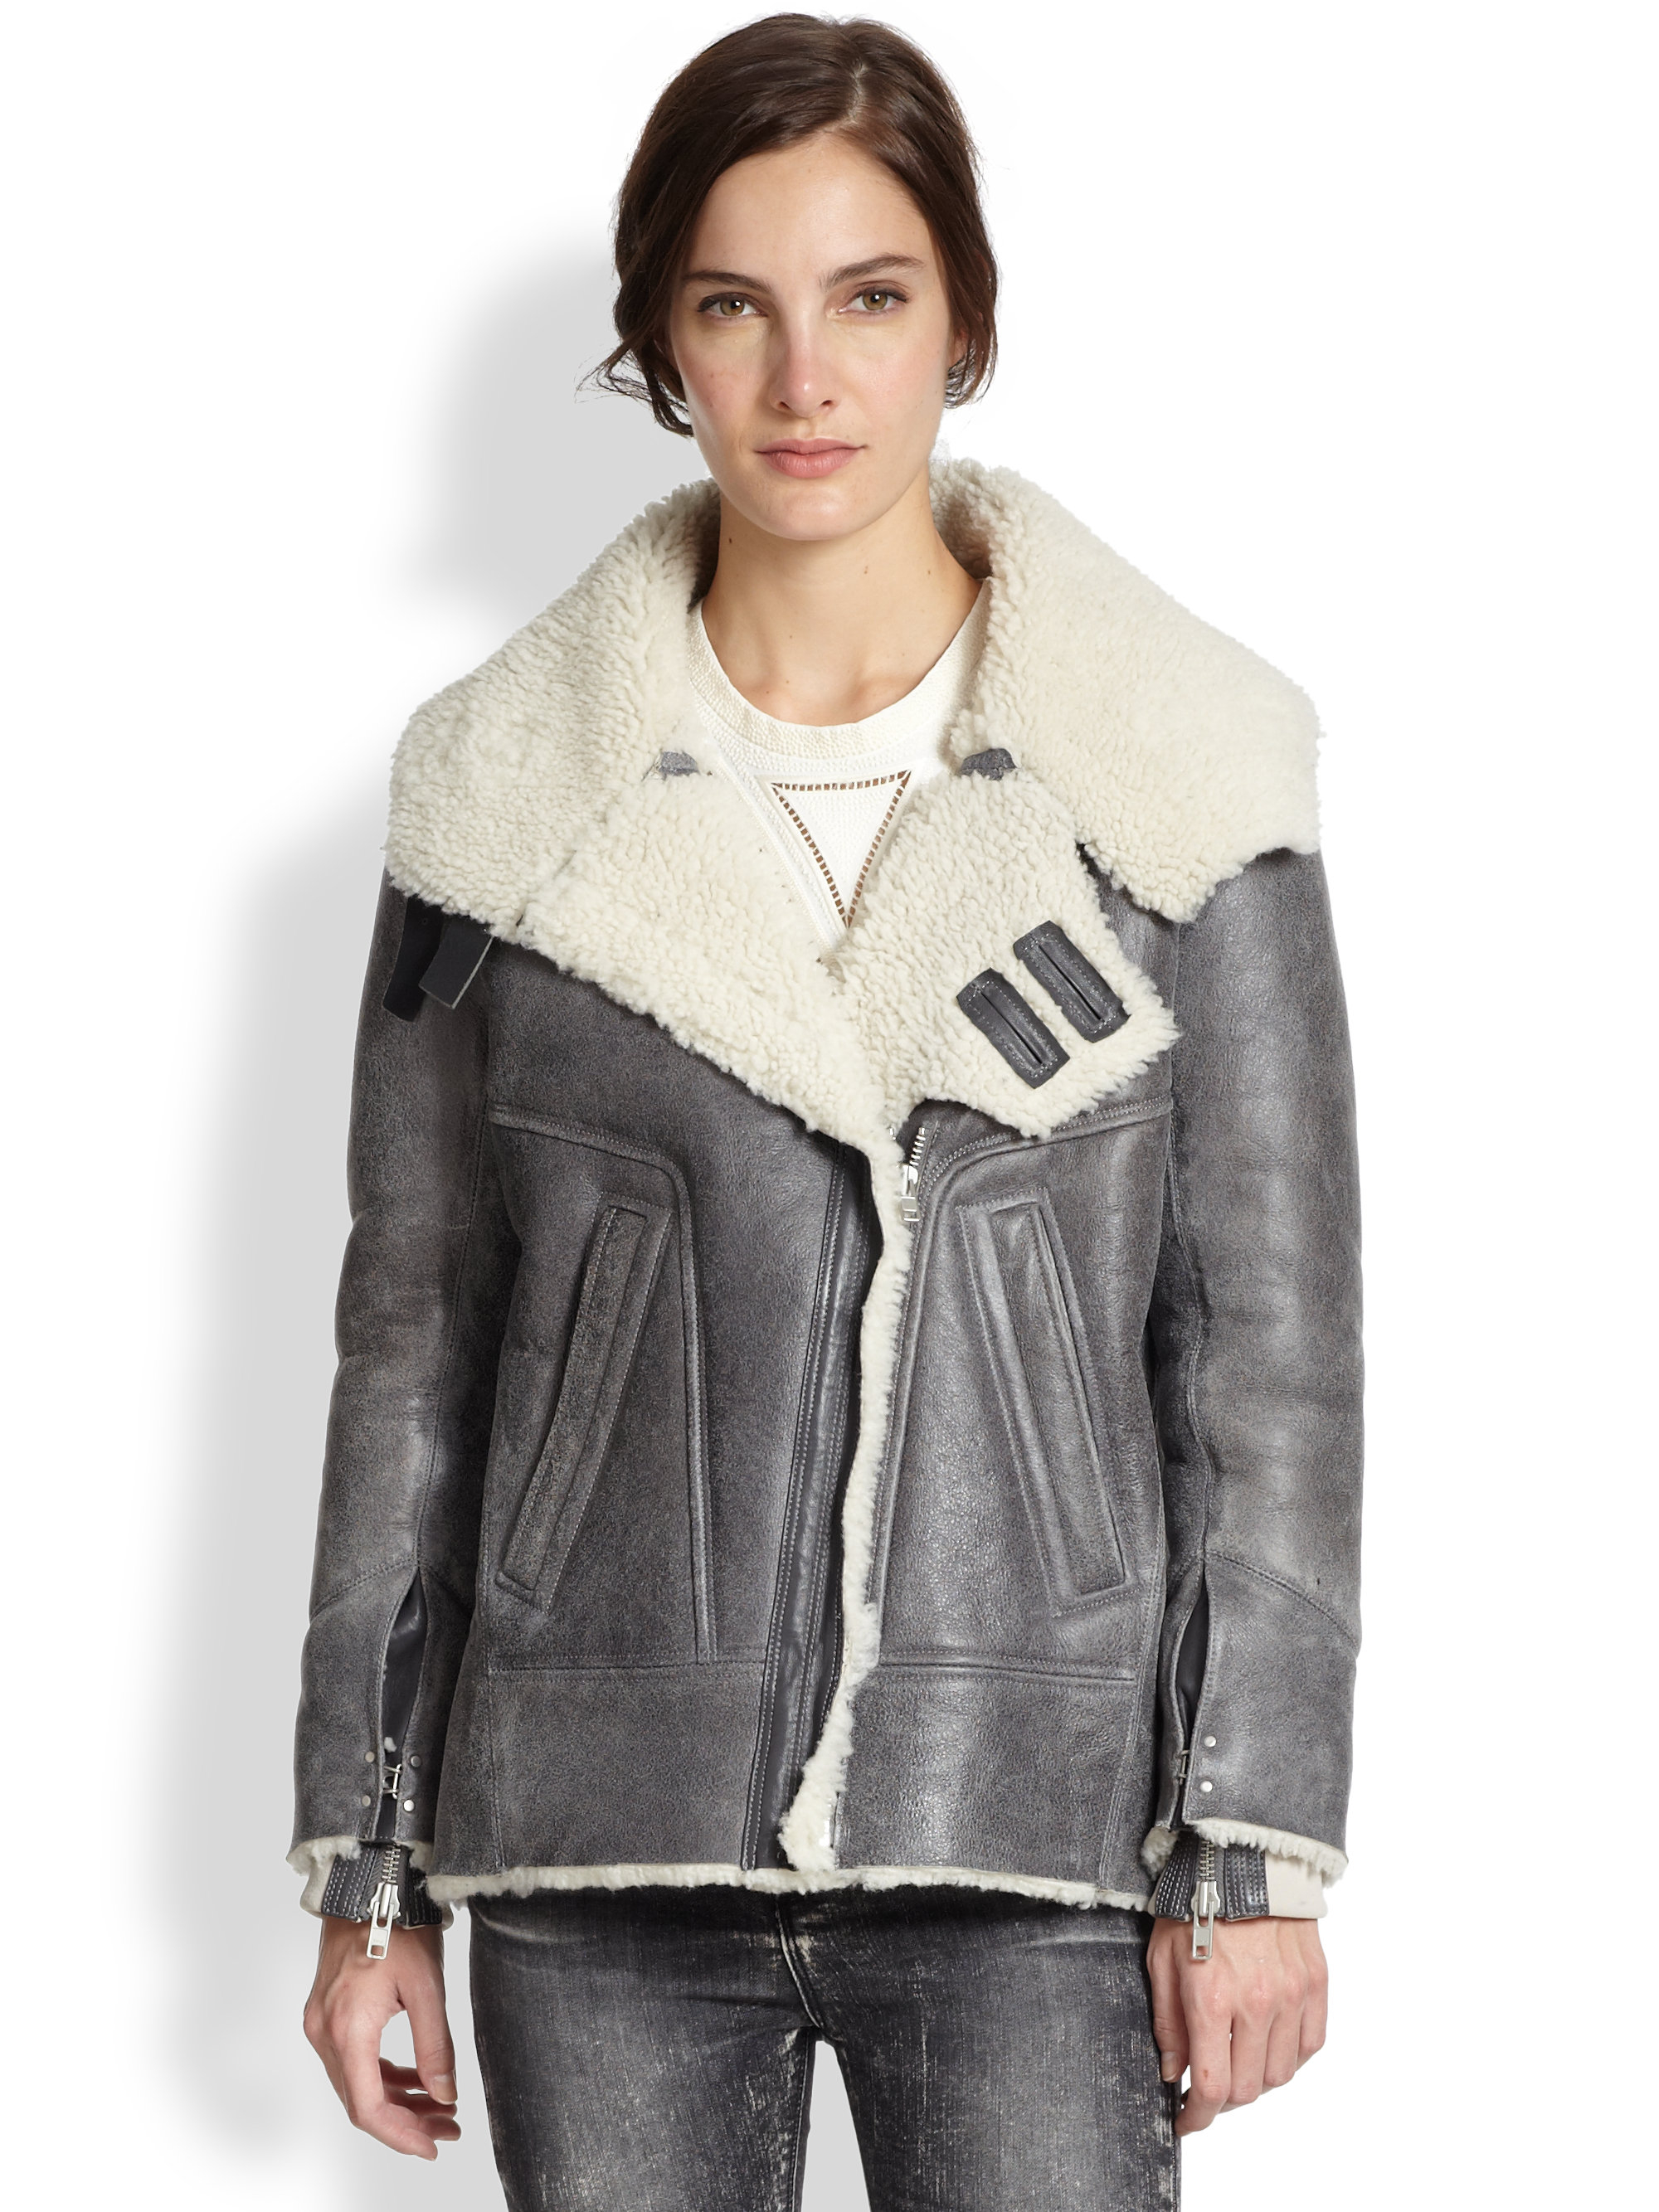 Leather shearling jackets